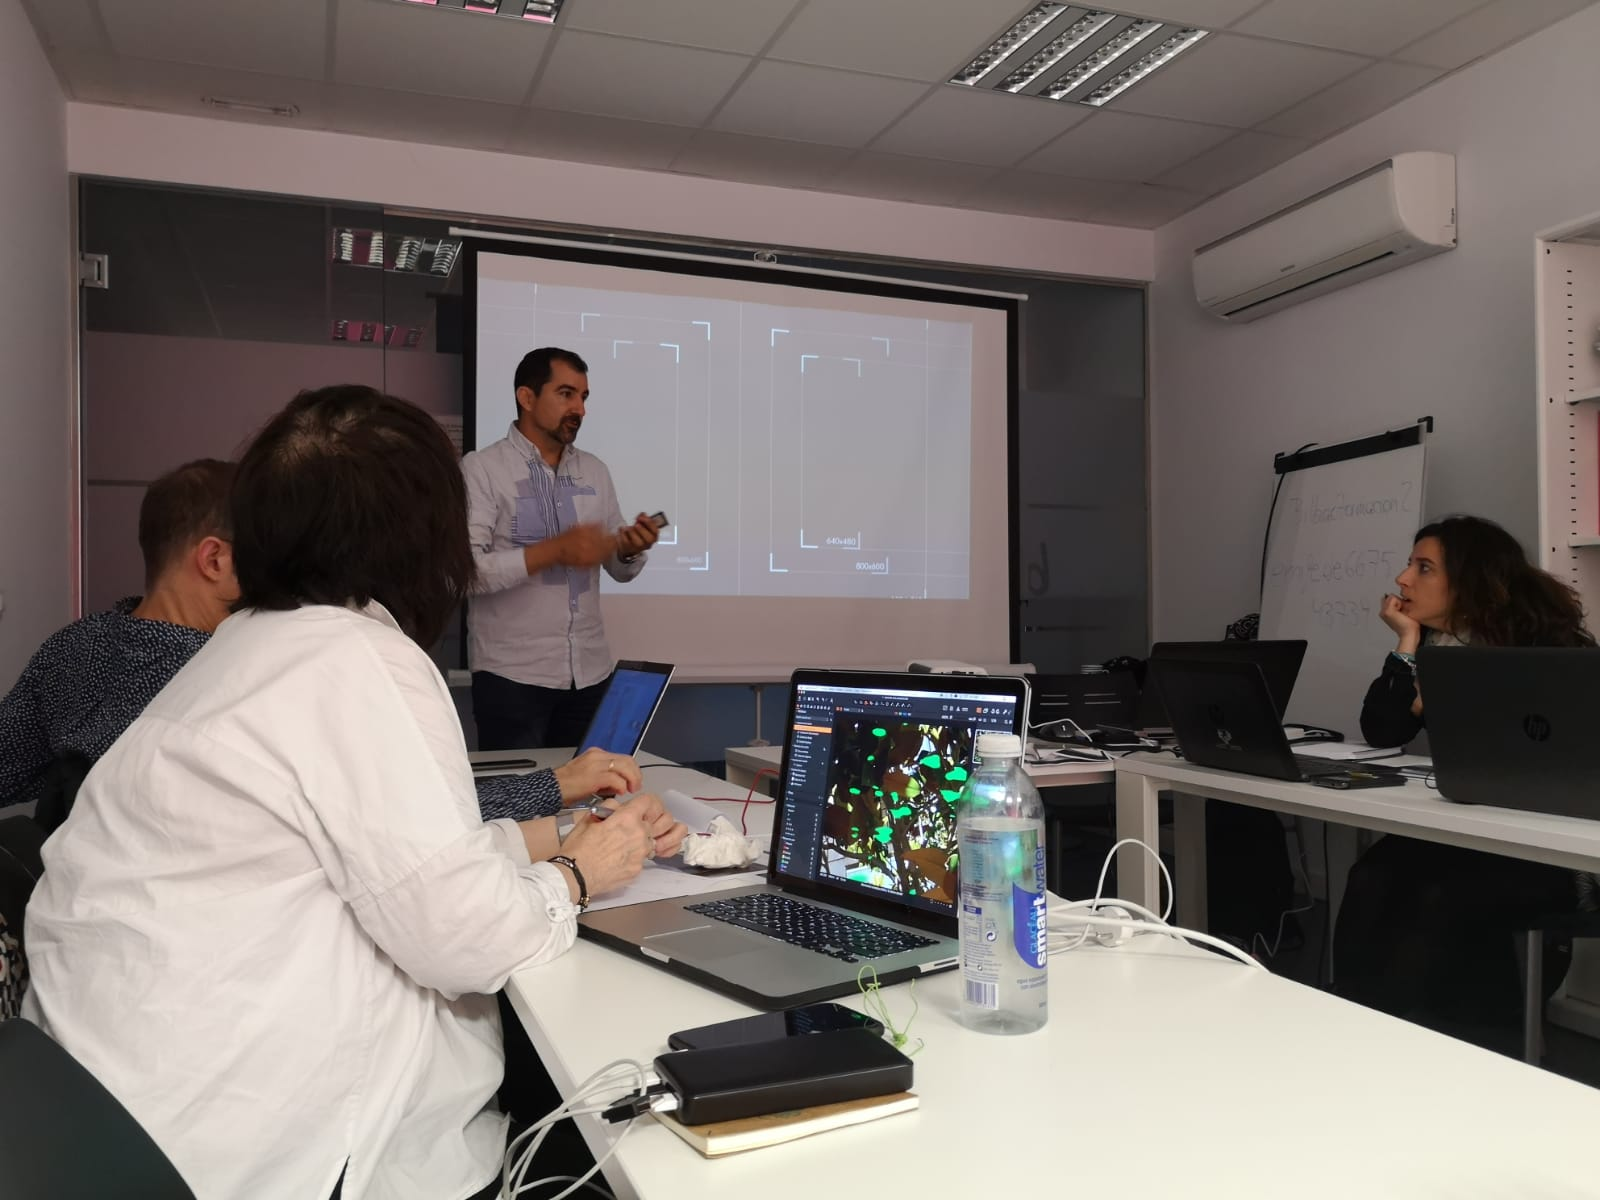 Taller de Capture One con Hugo Rodriguez